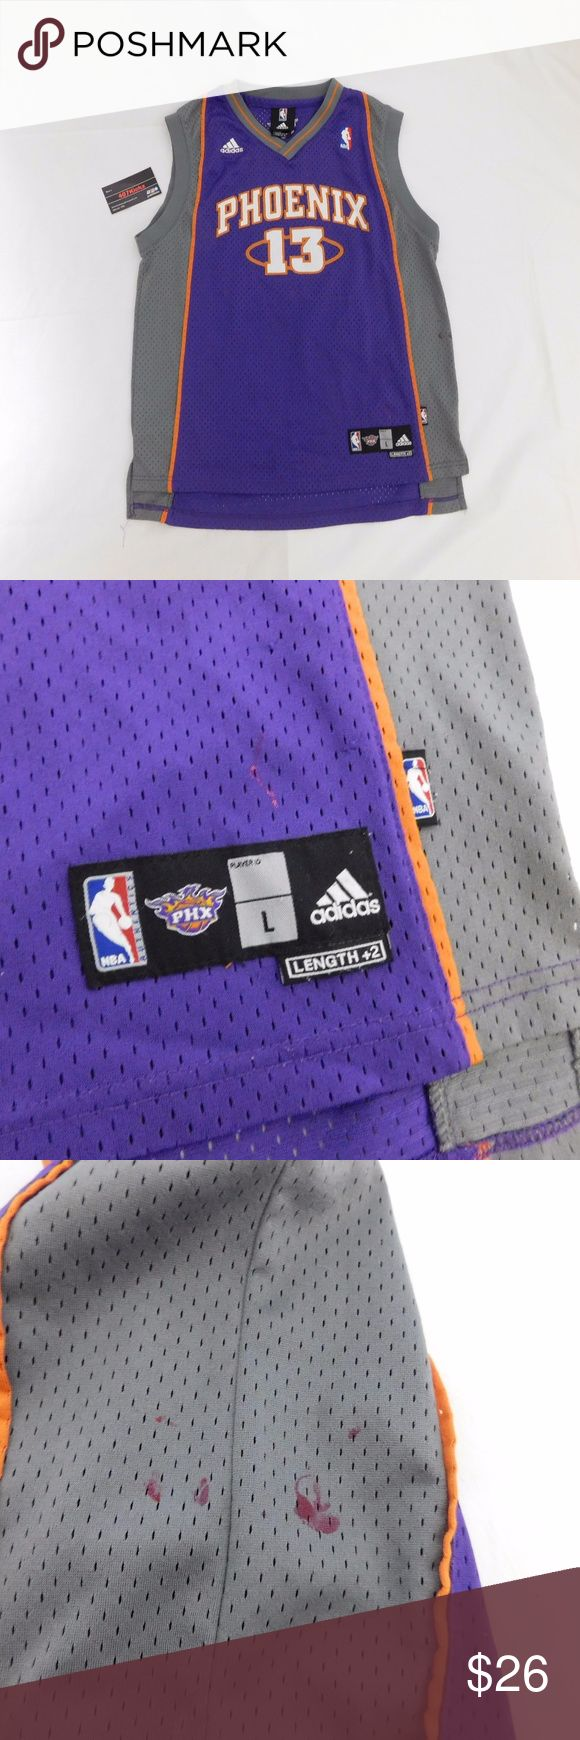 Steve Nash Suns Jersey YOUTH L USED Adidas NBA Phoenix Suns Steve Nash # 13 Throwback Purple Basketball Jersey | YOUTH Size Large (14-16) | Good condition, stains shown in pictures  For Discounts Follow Me on Instagram @407vintage !  KEYWORDS/TAGS: ultra boost , Tommy Hilfiger , Polo Sport , Nautica , NMD , supreme , kith , bred , adidas , banned , french blue , stussy , Maestro , vintage , kaws , solefly , trophy room , box logo , gamma blue , retro jordan , steal , foams , foamposite…